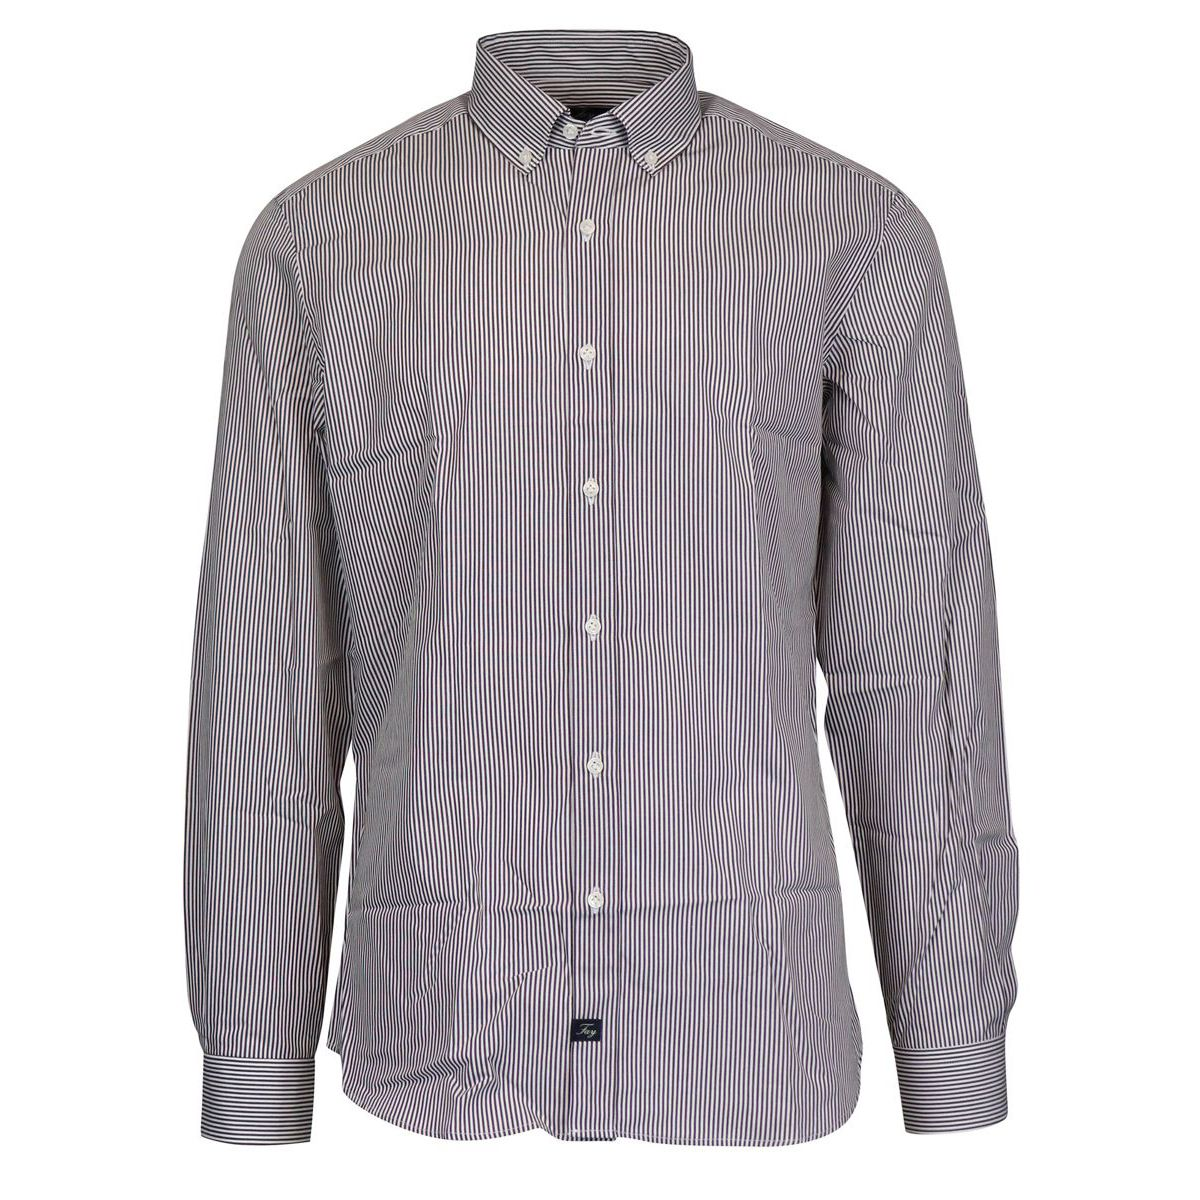 Slim striped button down cotton shirt Moro Fay